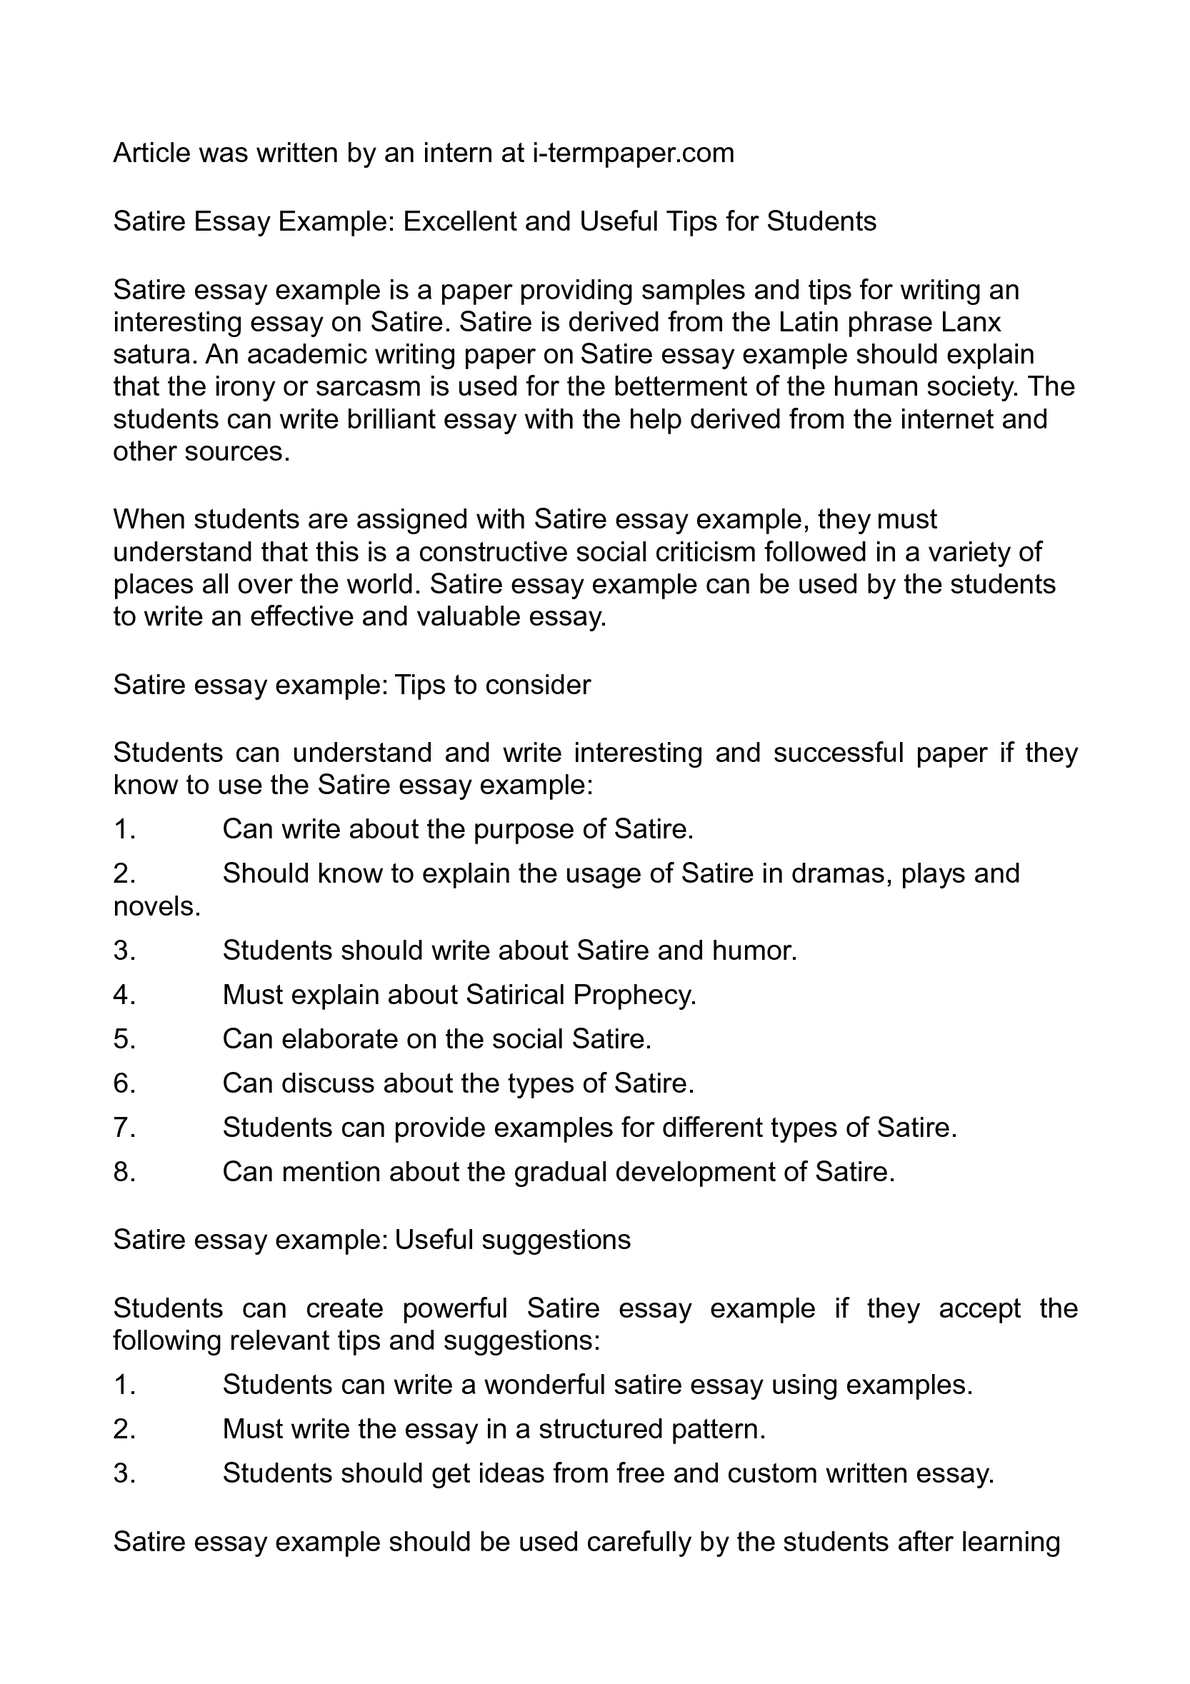 gattaca essay topics satire essay topics satirical essay topics  satire essay topics satirical essay topics gxart example of satirical essay topics gxart orgexamples of satire